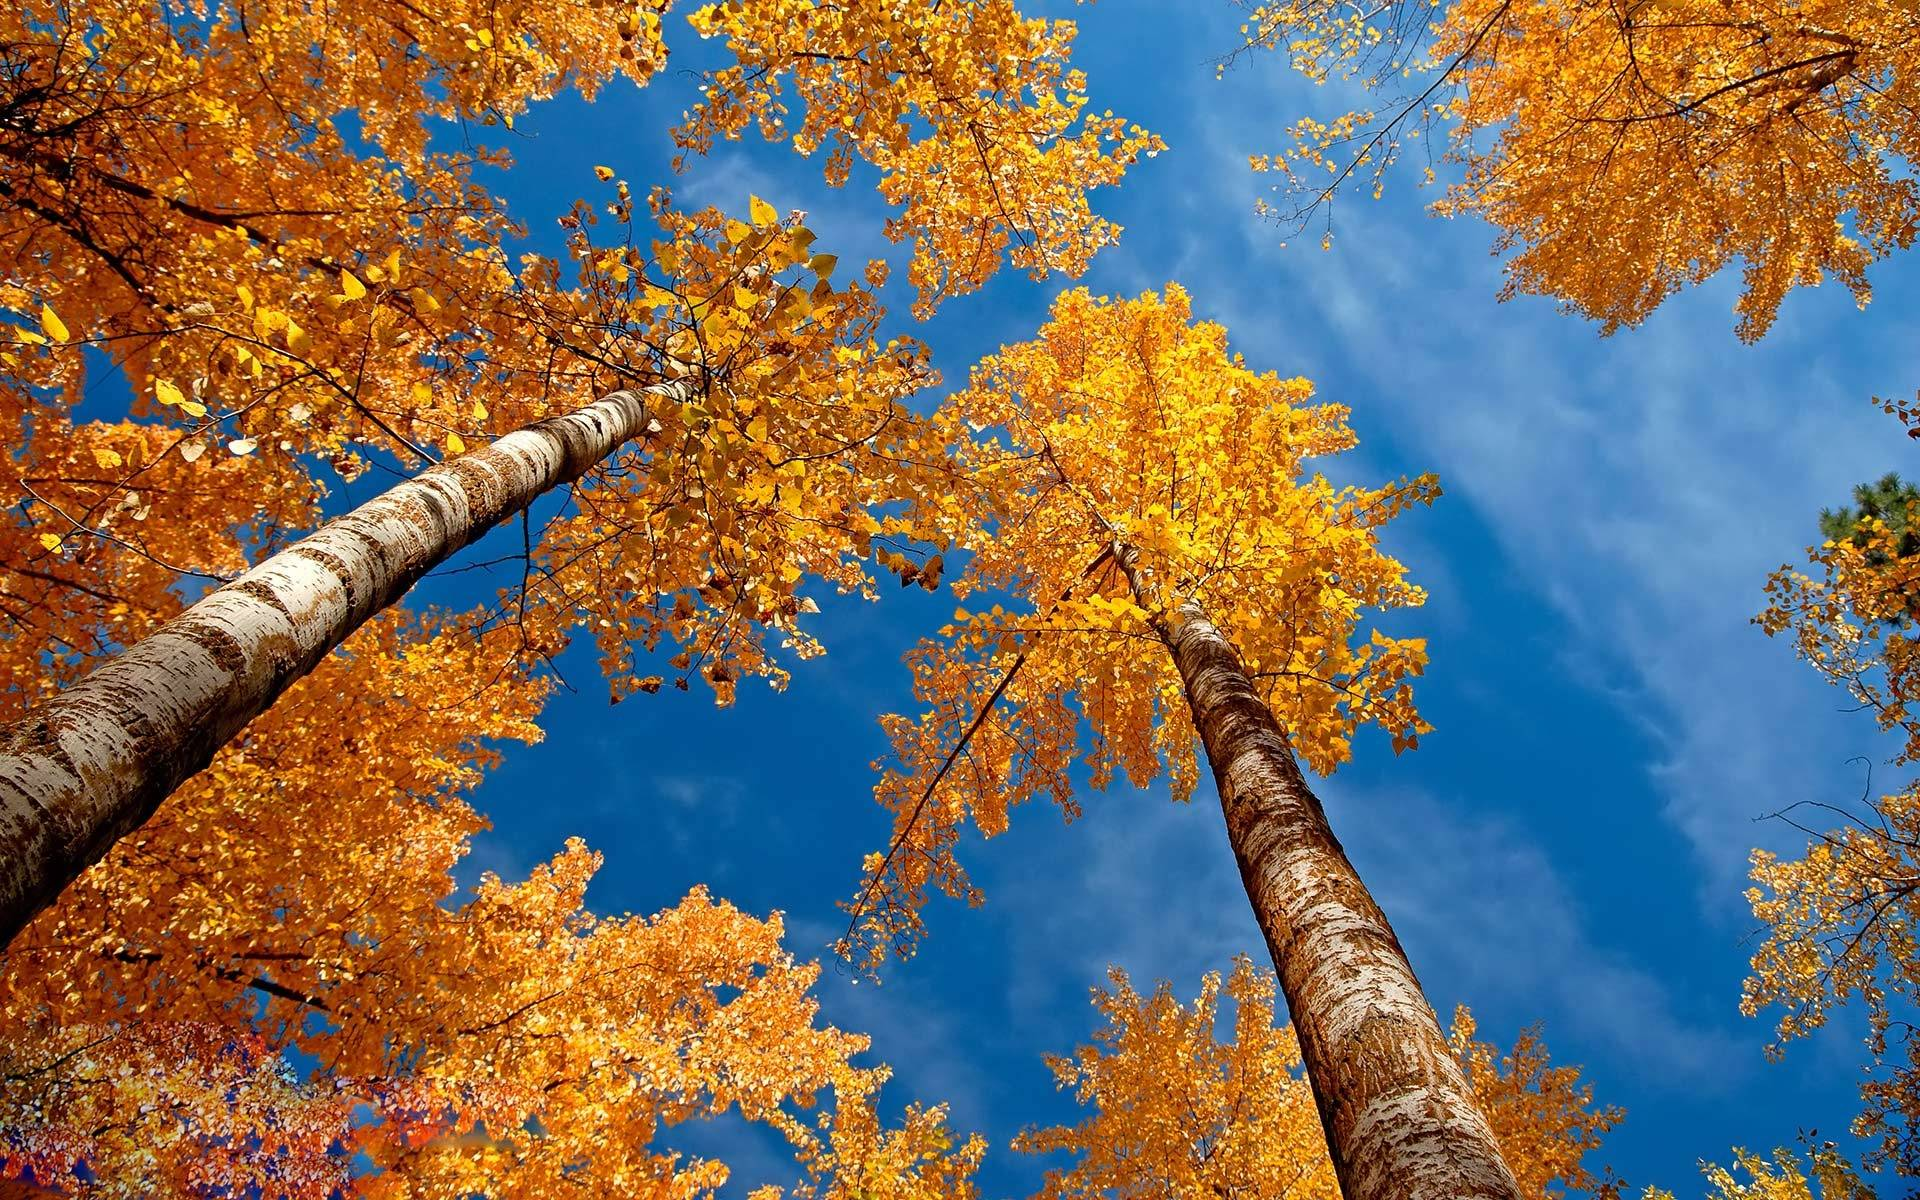 Falling Skies Wallpaper Autumn Trees Wallpapers Wallpaper Cave